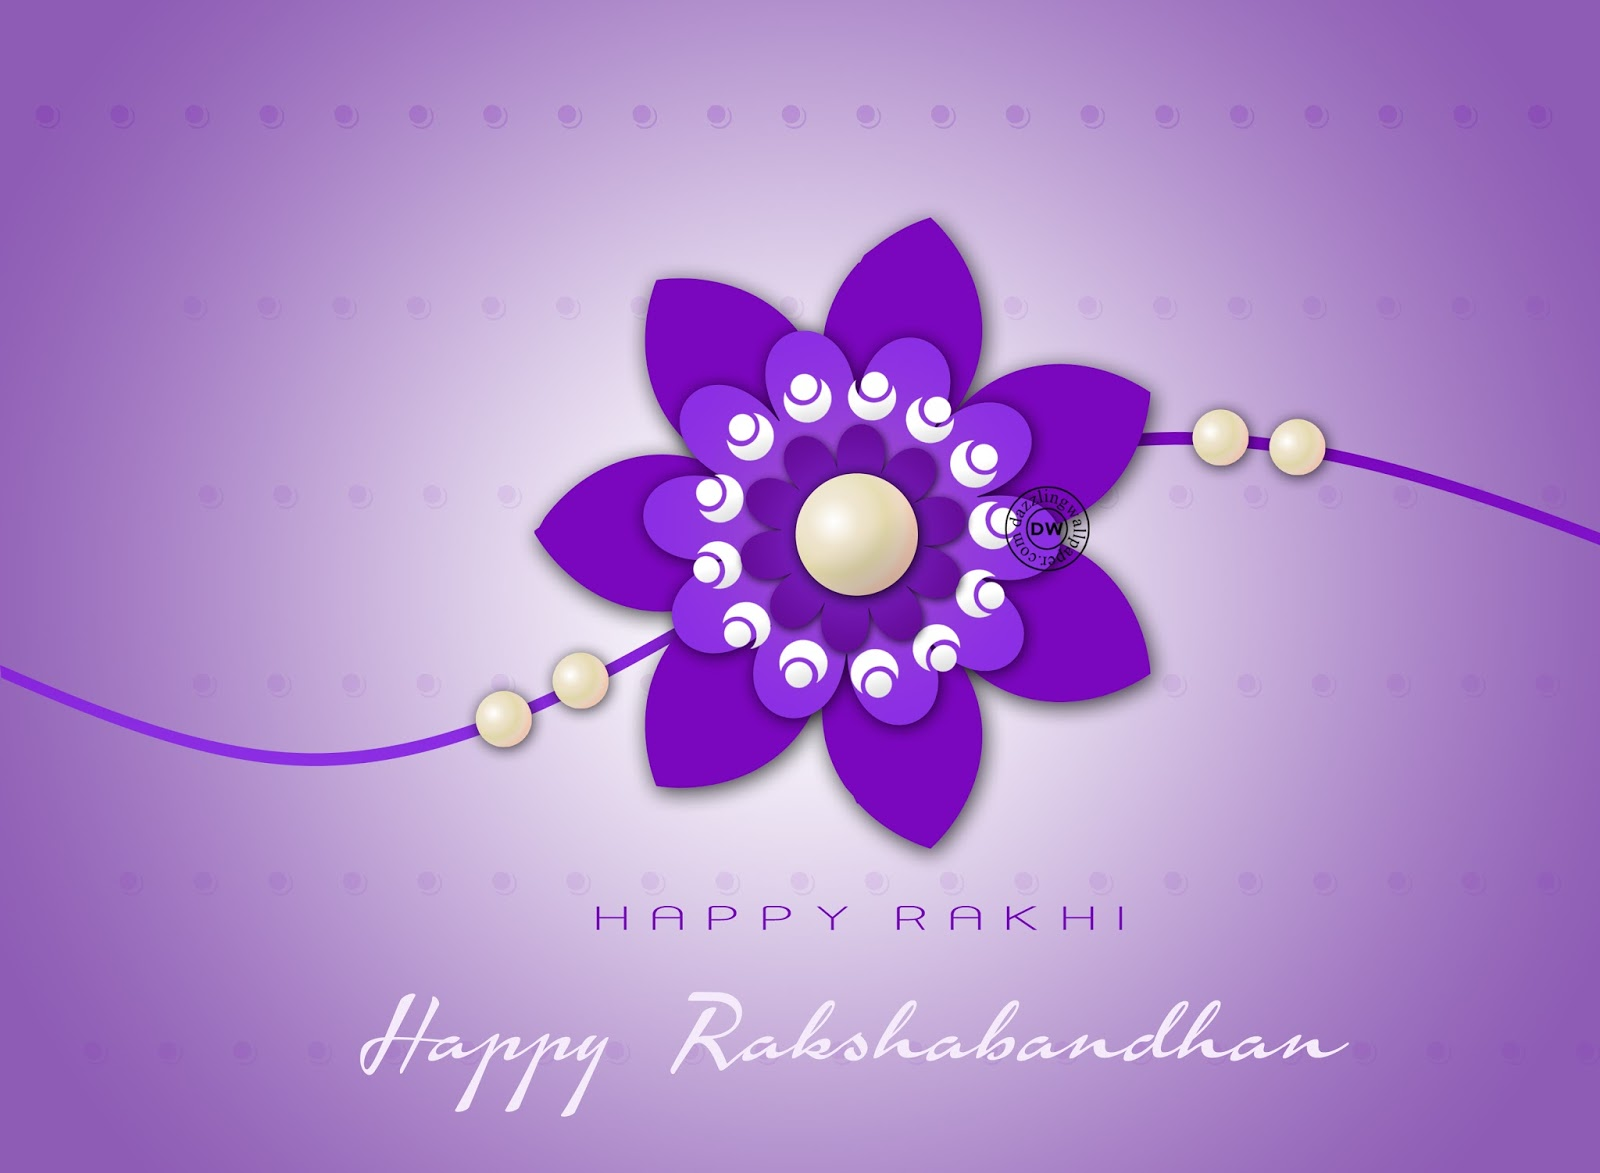 happy raksha bandhan rakhi 2016 wishes images quotes sms rakhi raksha bandhan hd for mobile and